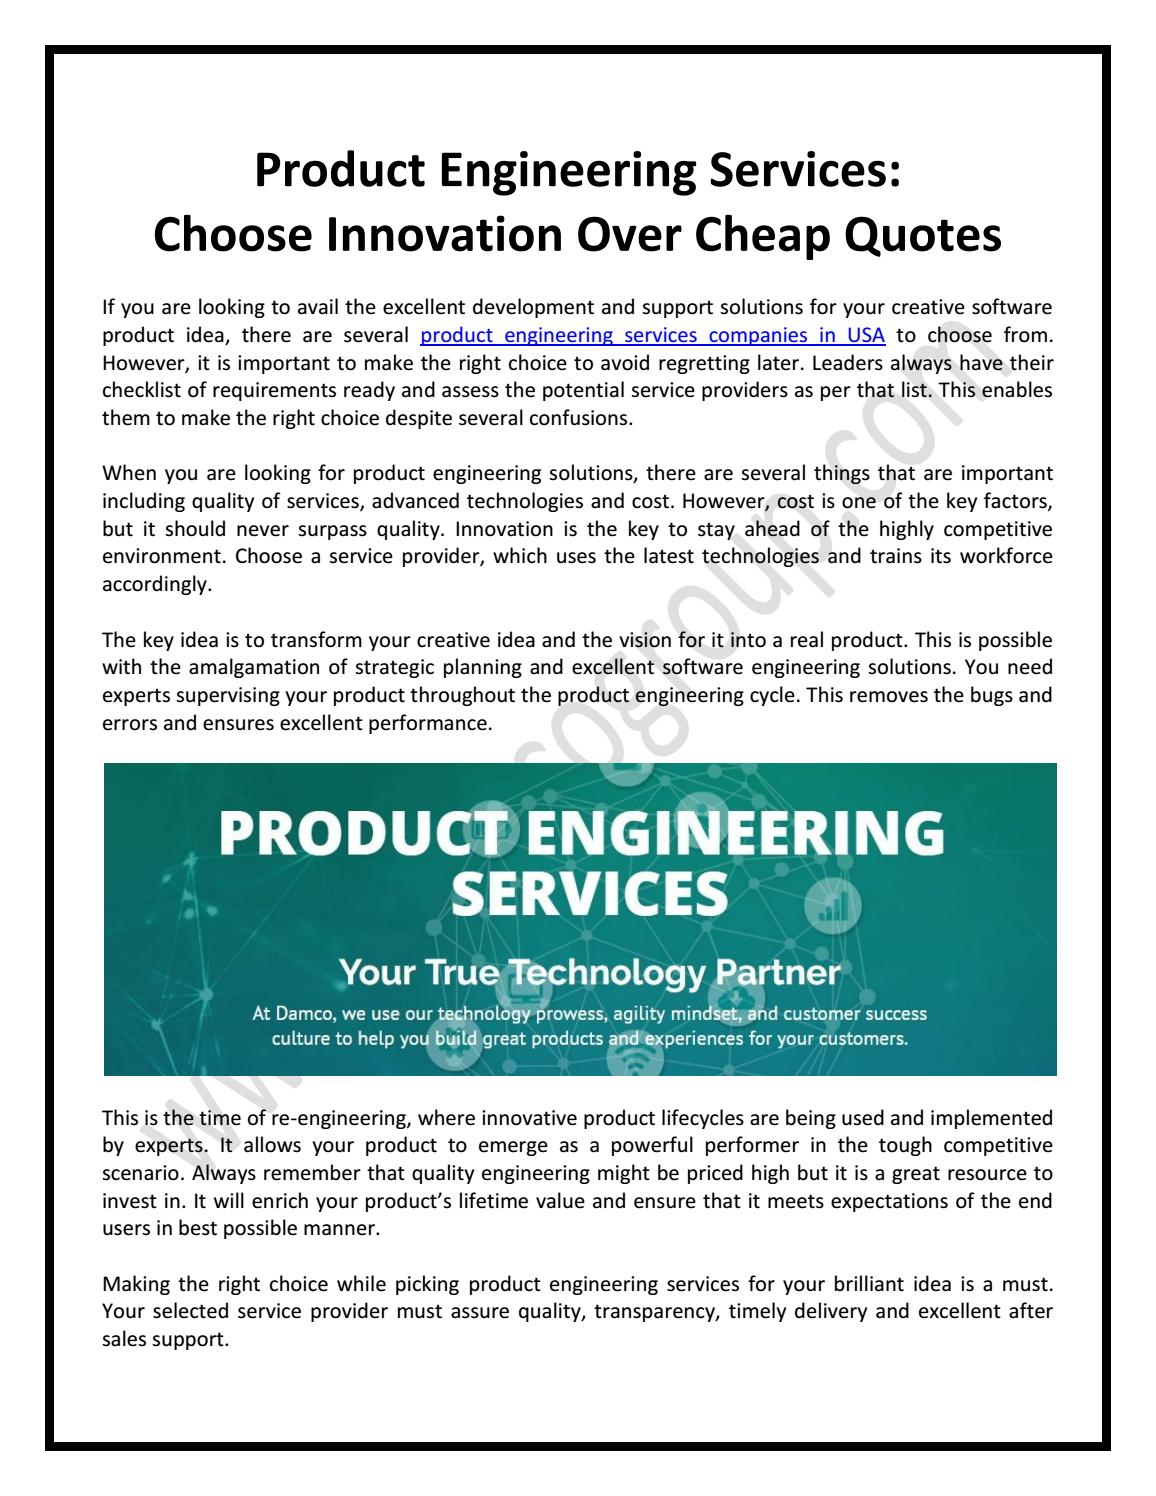 Product Engineering Services Choose Innovation Over Cheap Quotes By